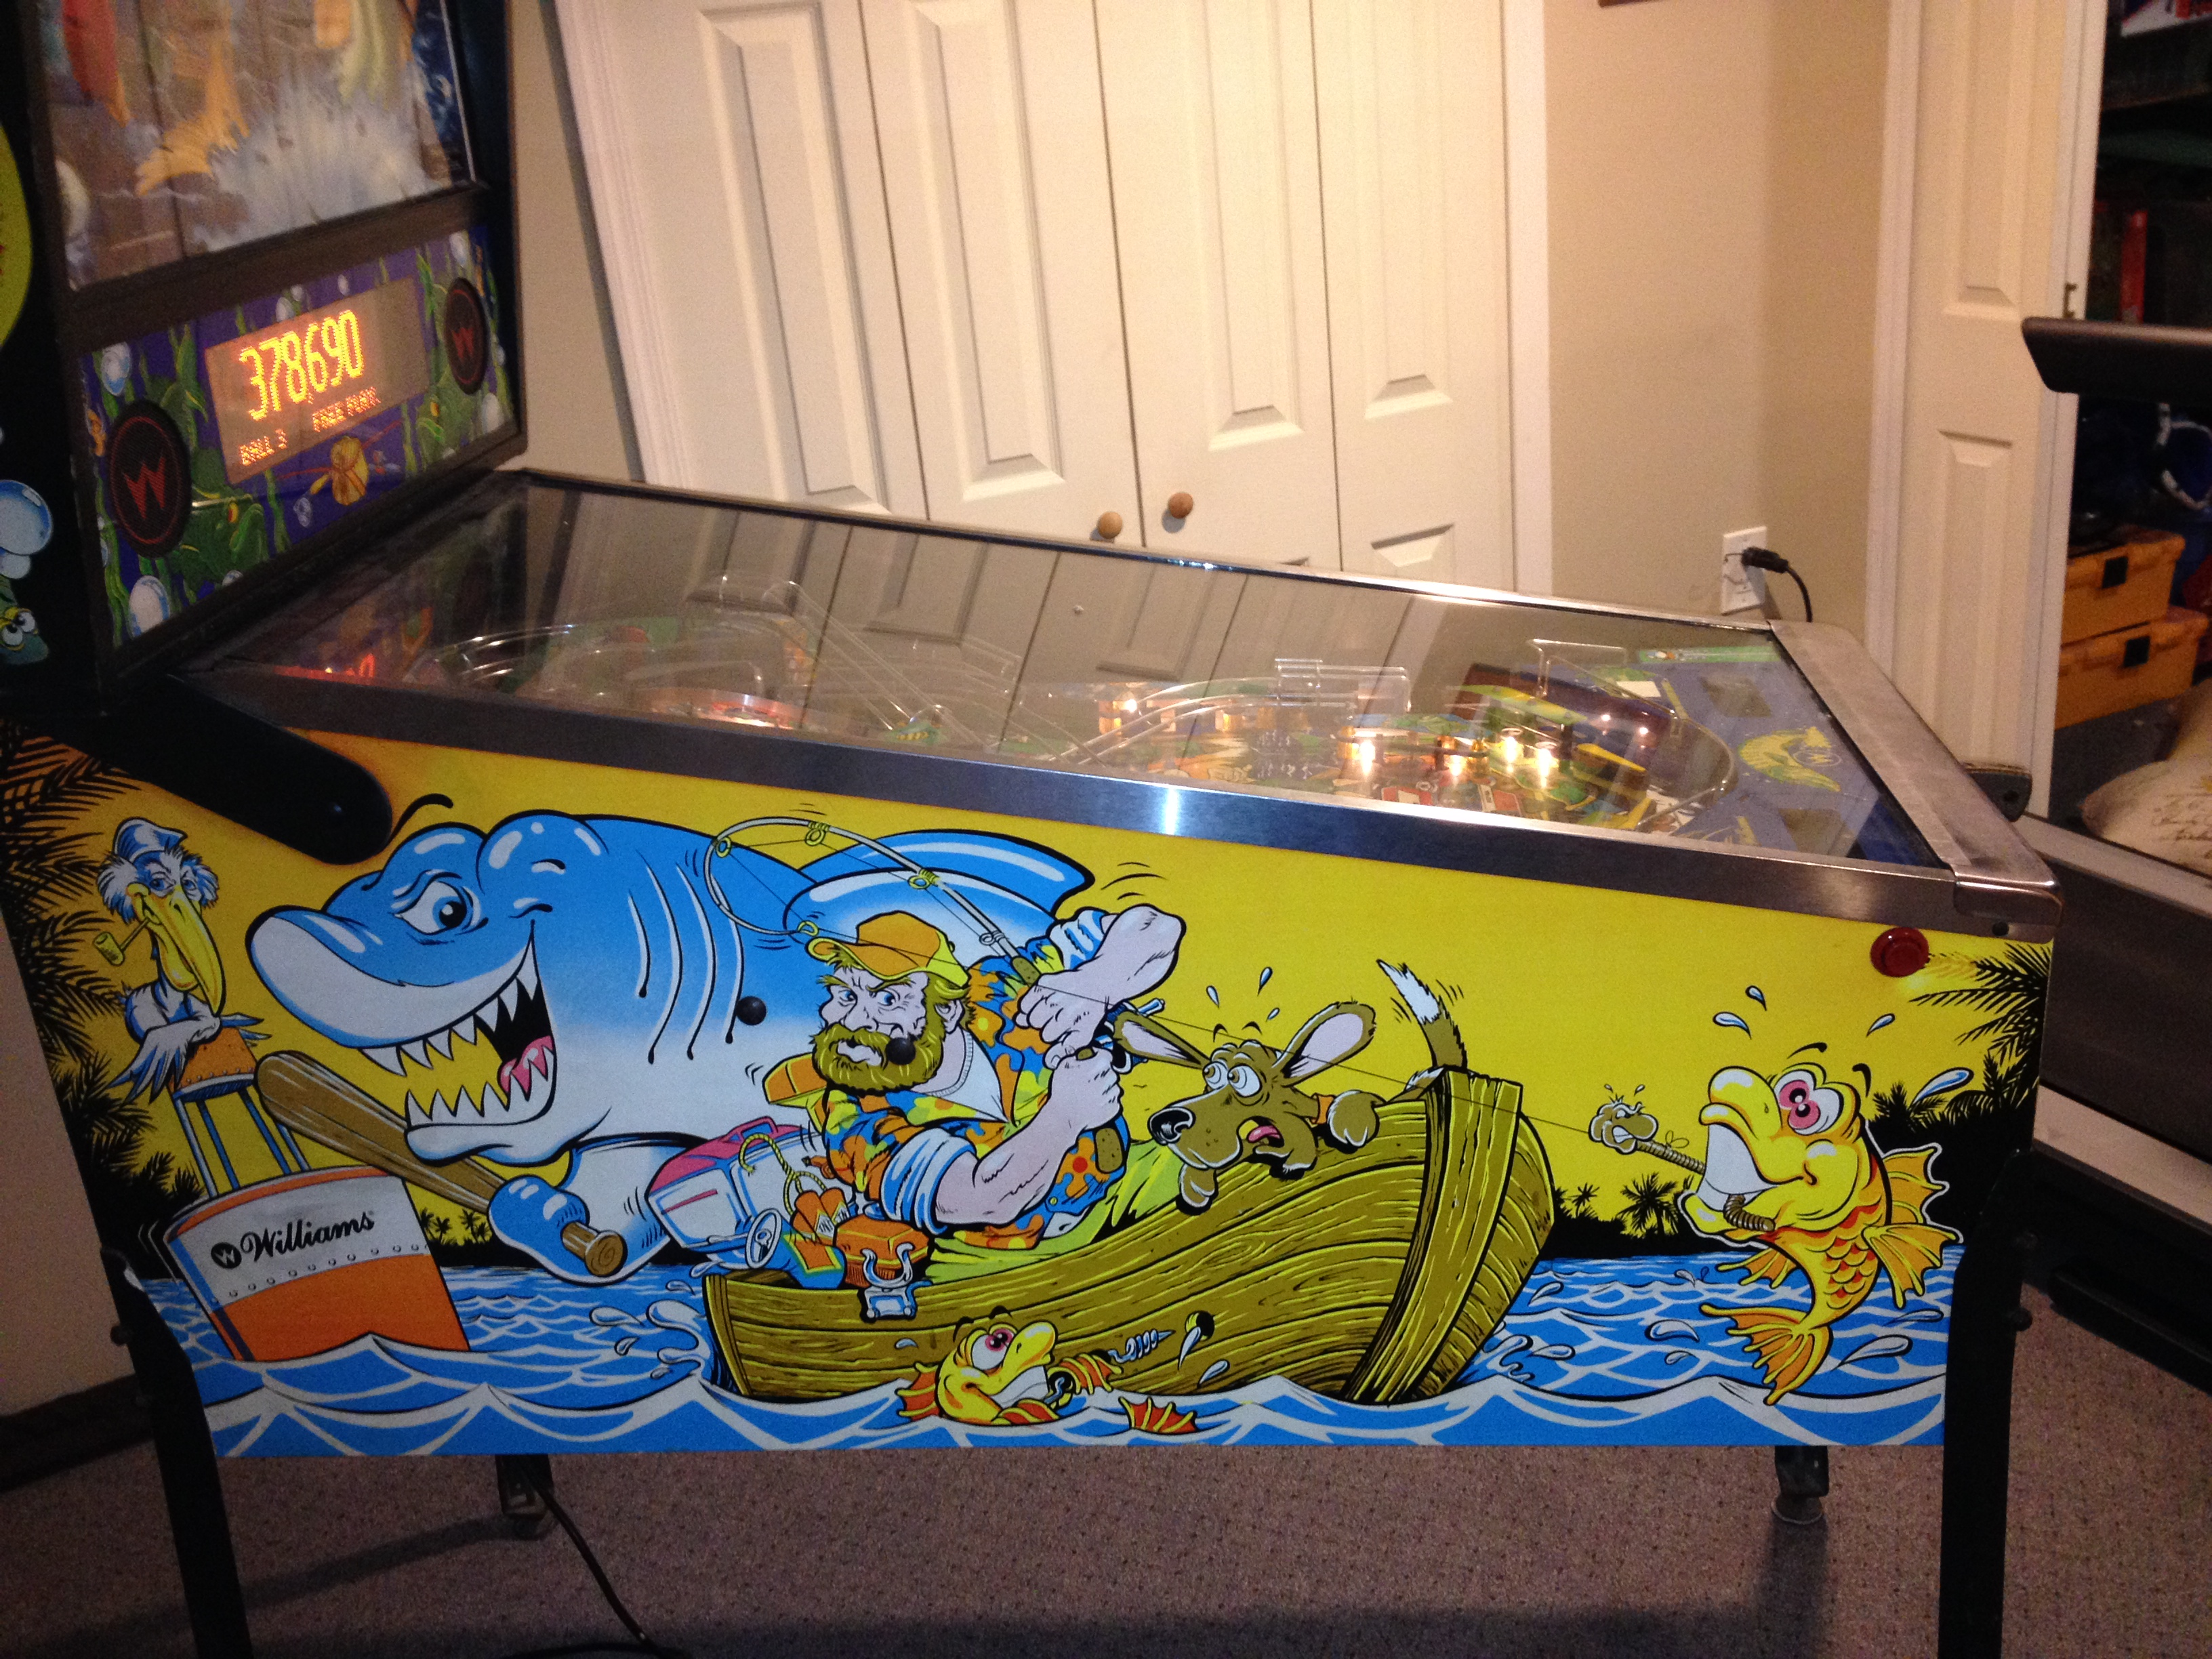 1992 Fish Tales Pinball Machine For Sale | Merrick, NY Patch